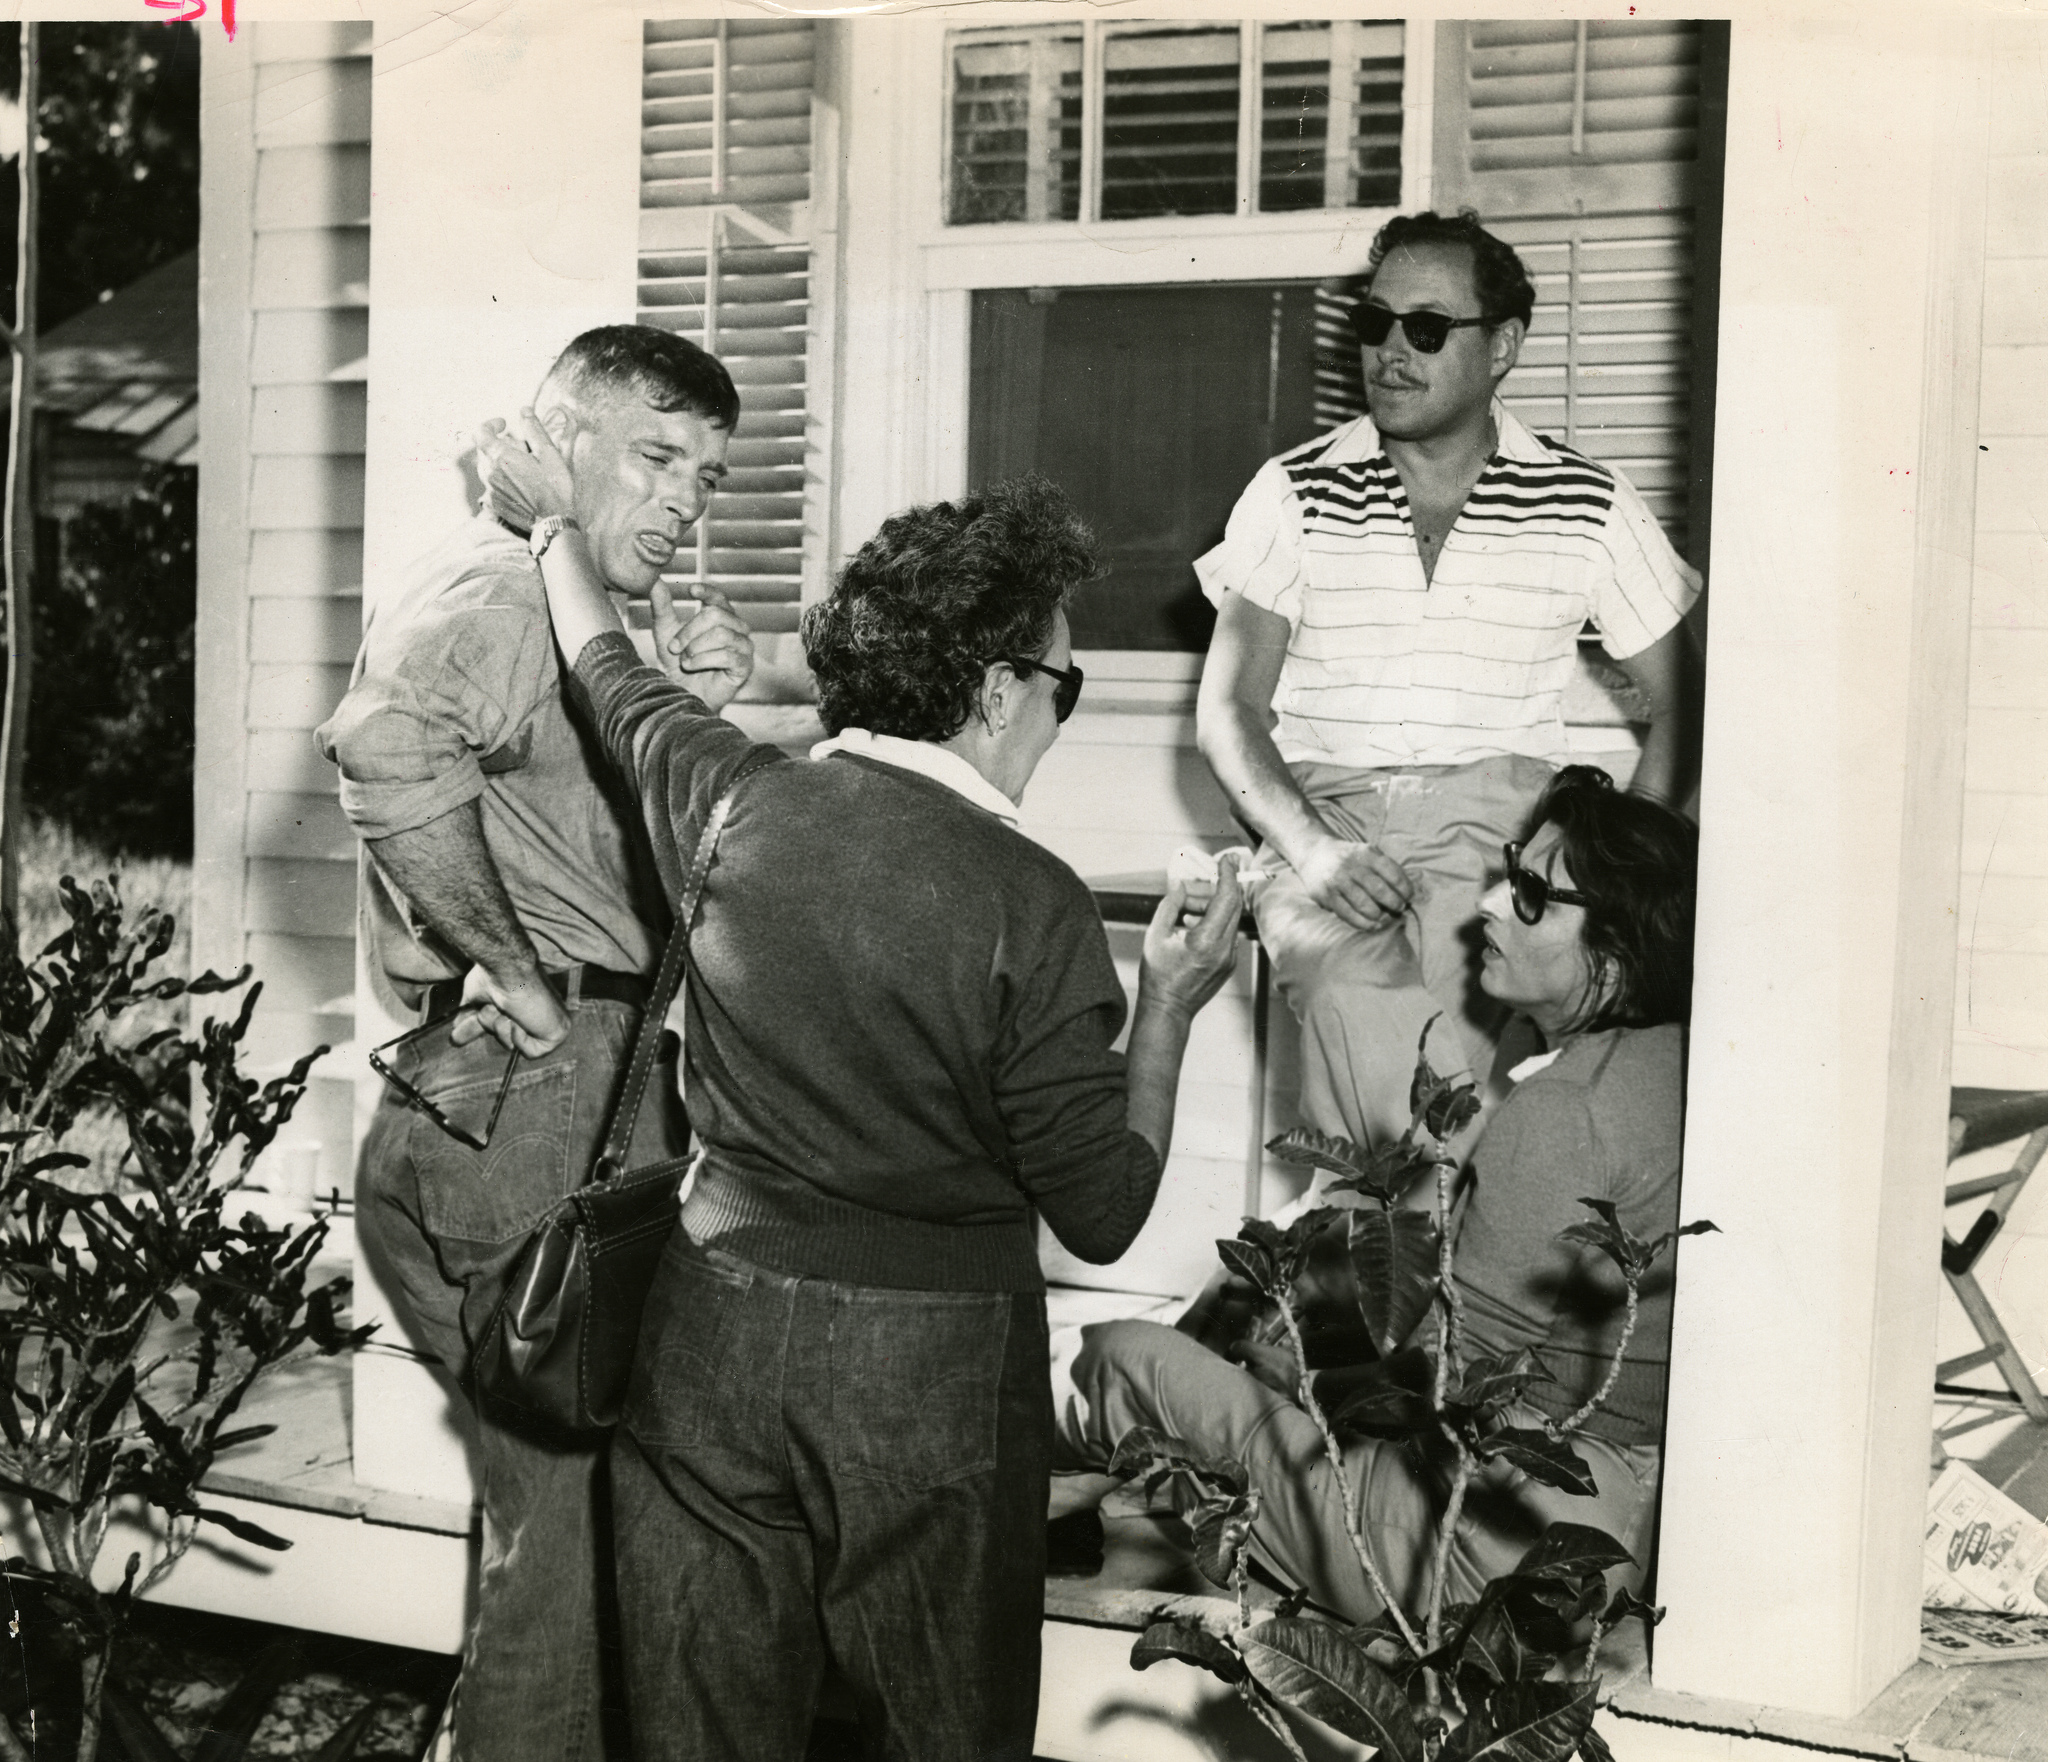 Burt Lancaster, left, Tennessee Williams, center, and Anna Magnani, right, in Key West during the filming of The Rose Tattoo. Photo from the Monroe County Public Library.